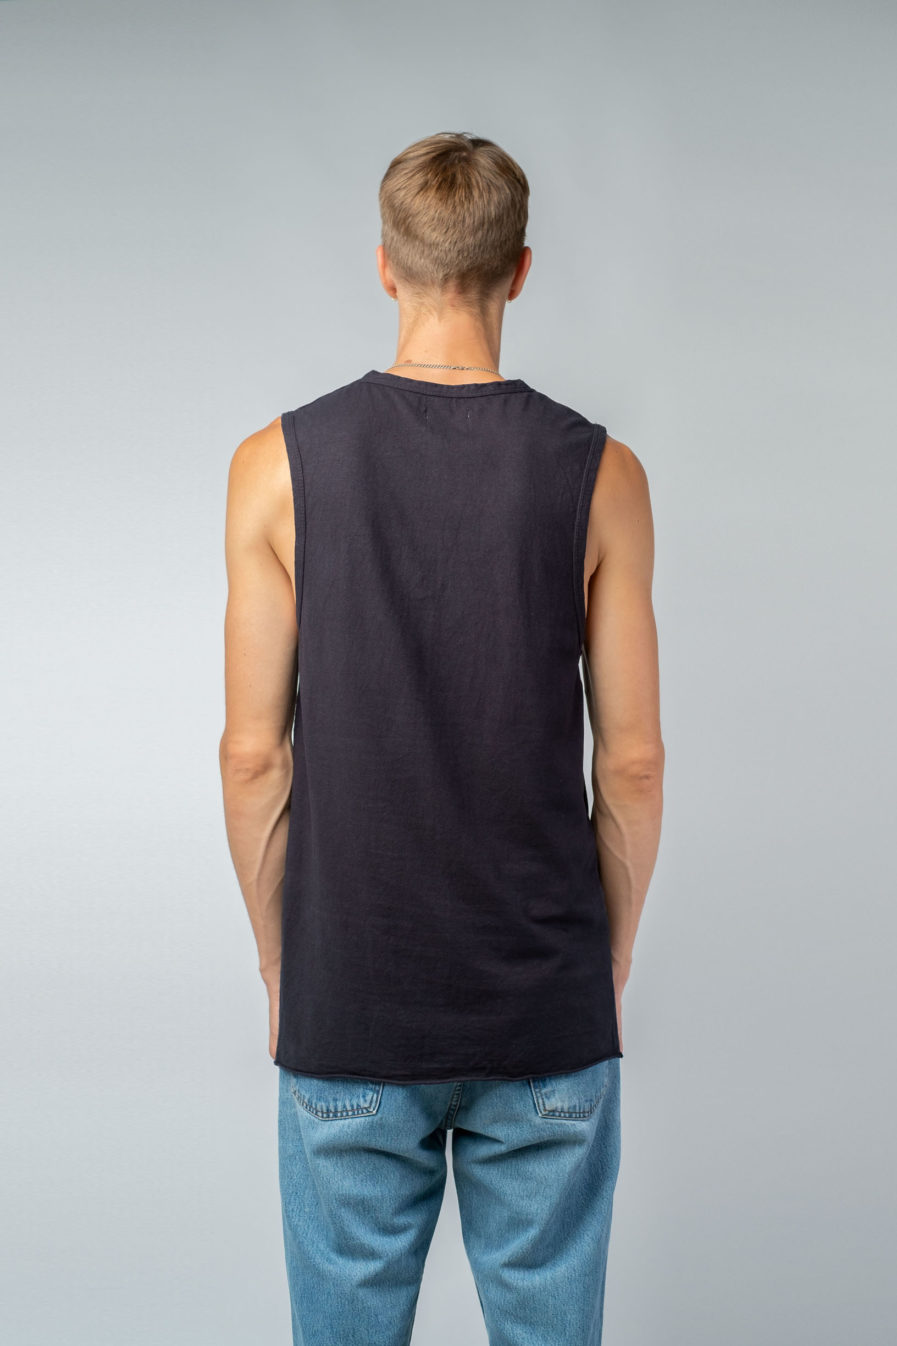 MAN unisex singlet tanktop hemp organic cotton DRIES Carbon black back